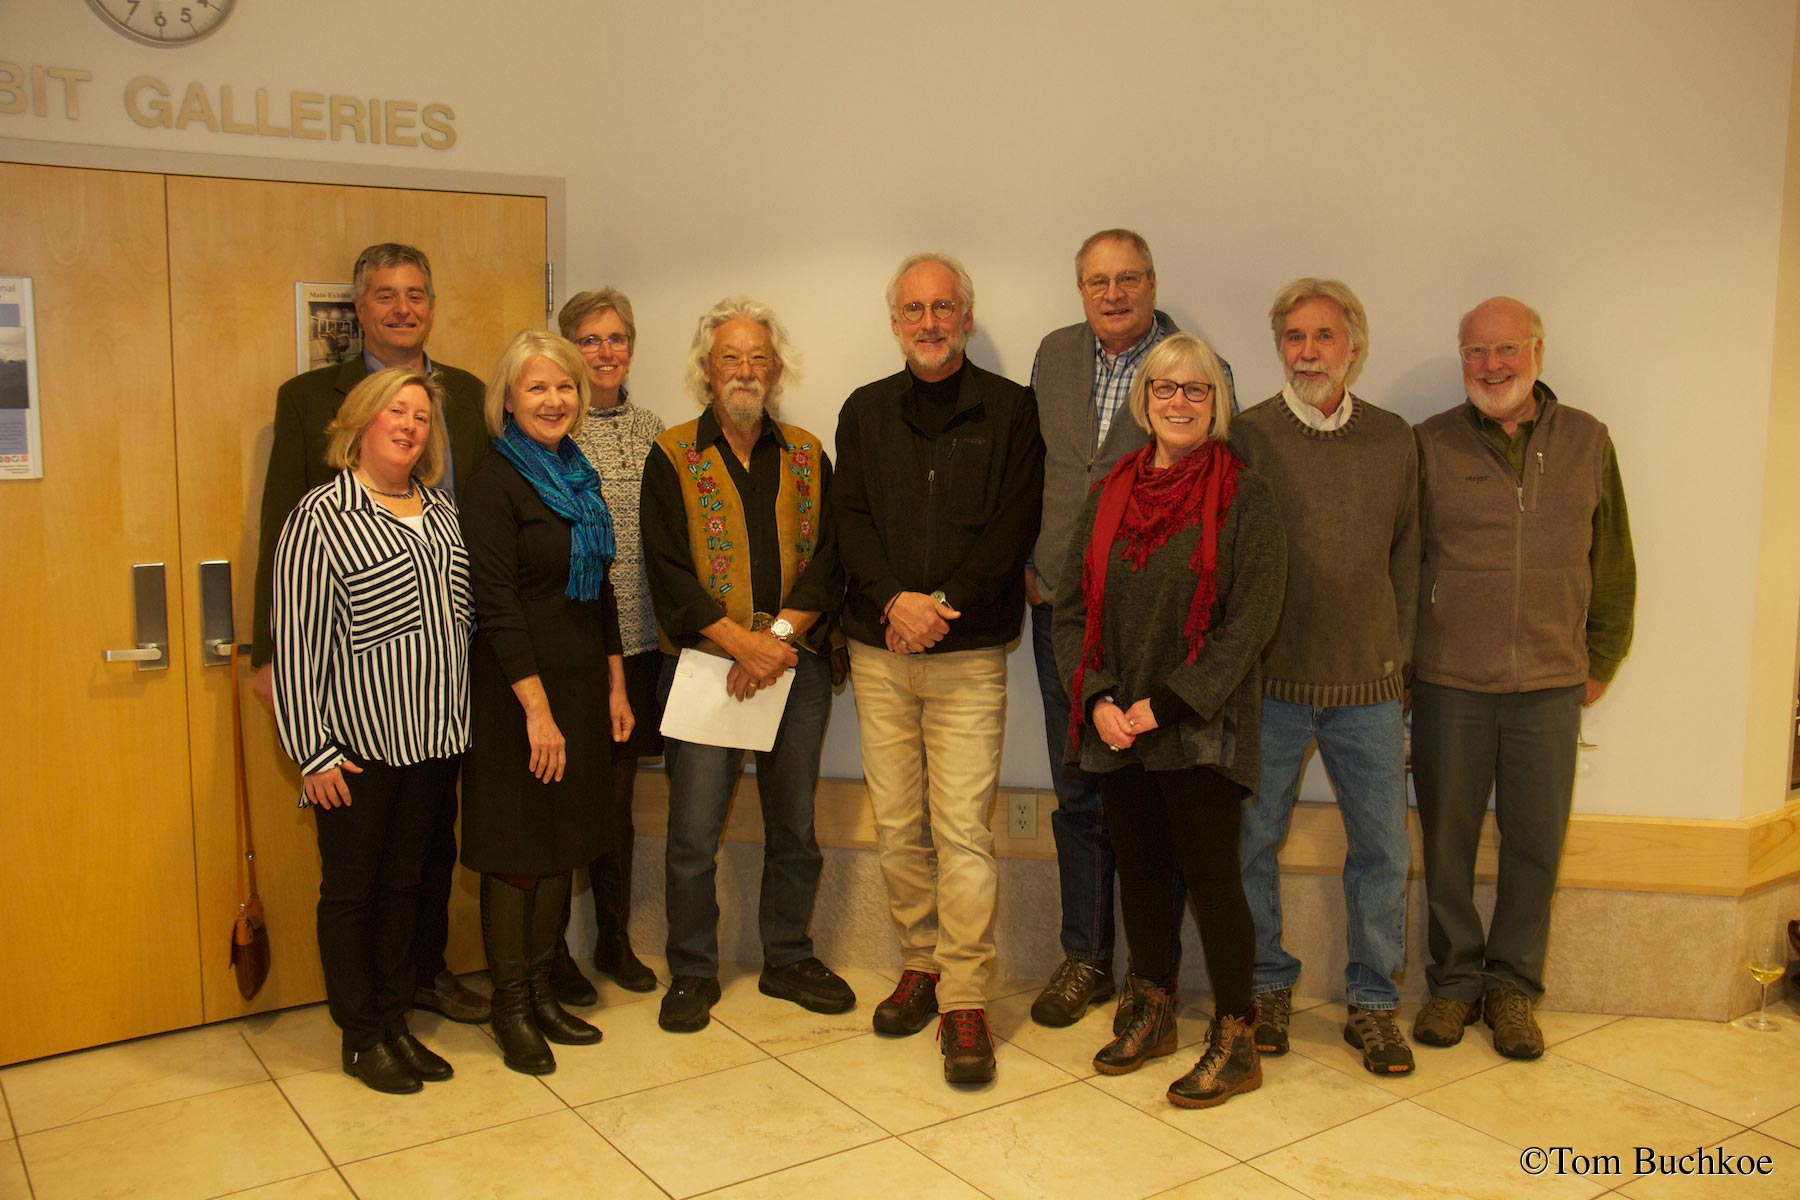 SWP Board From Left to Right: Dean Bothwell, Ron Cavallaro (back row), Lisa Kotler (Emeritus), Maura Davenport (back row), Dr. David Suzuki (Honorary Emeritus), Carl Lindquist, Jerry Maynard (back row), Mary Swift, Ron Sundell, Rich VanderVeen.